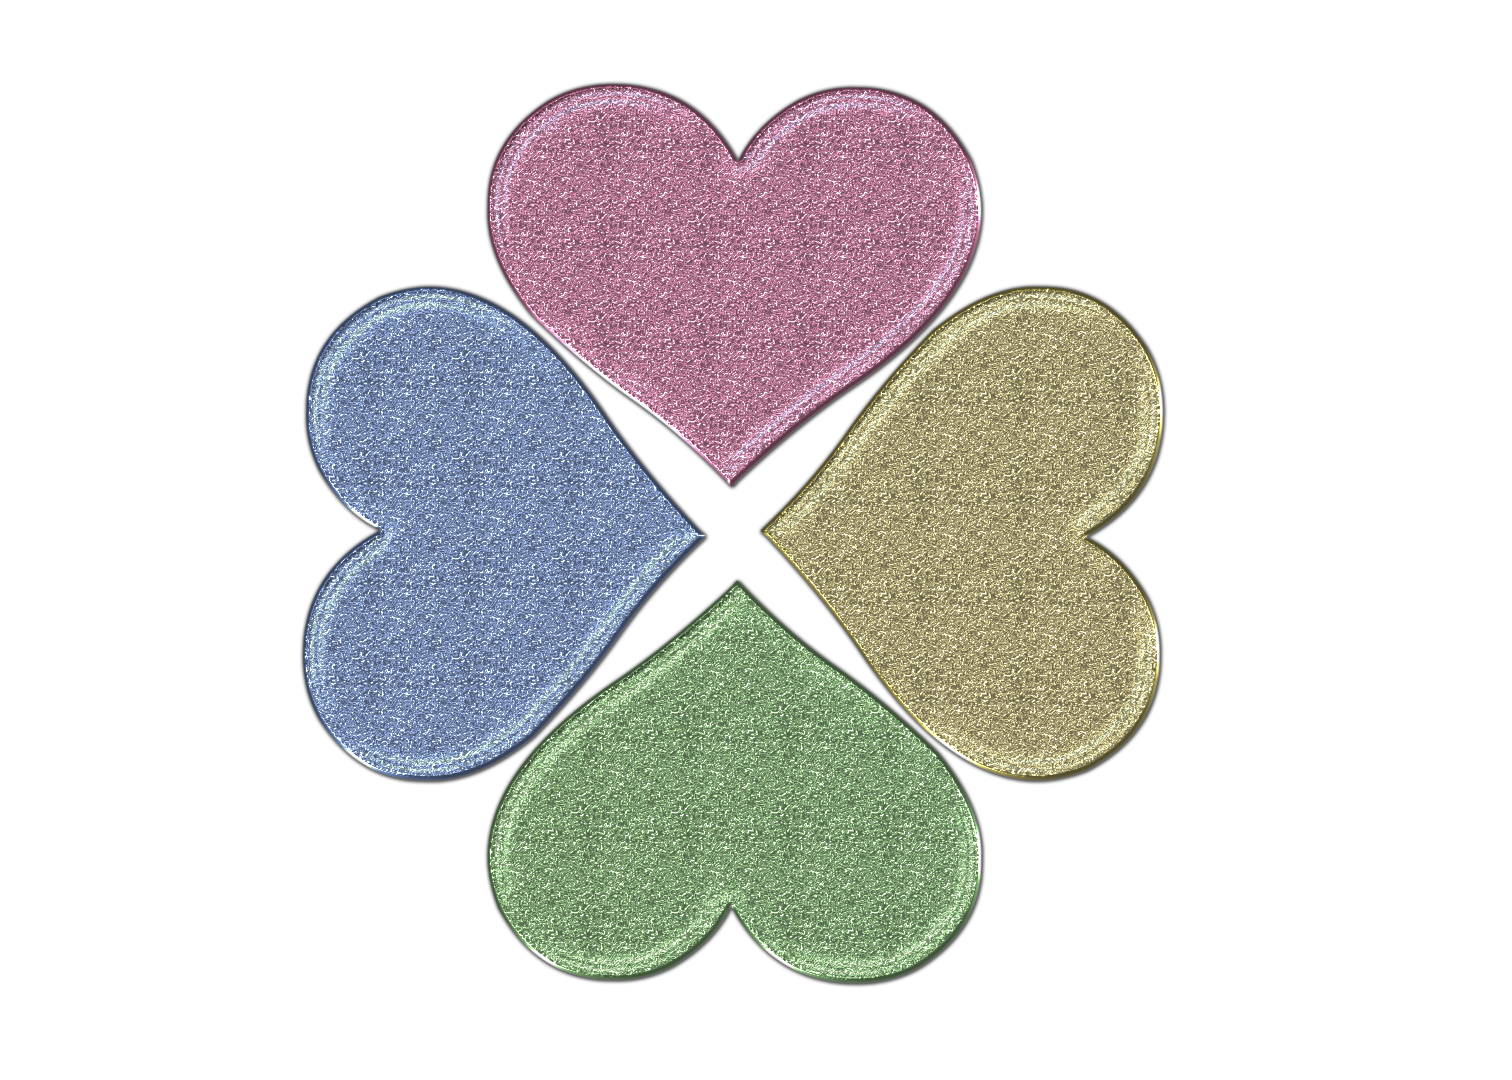 Heart clover clipart picture library download Heart Clover Glitter PNG by Princessdawn755 on DeviantArt picture library download